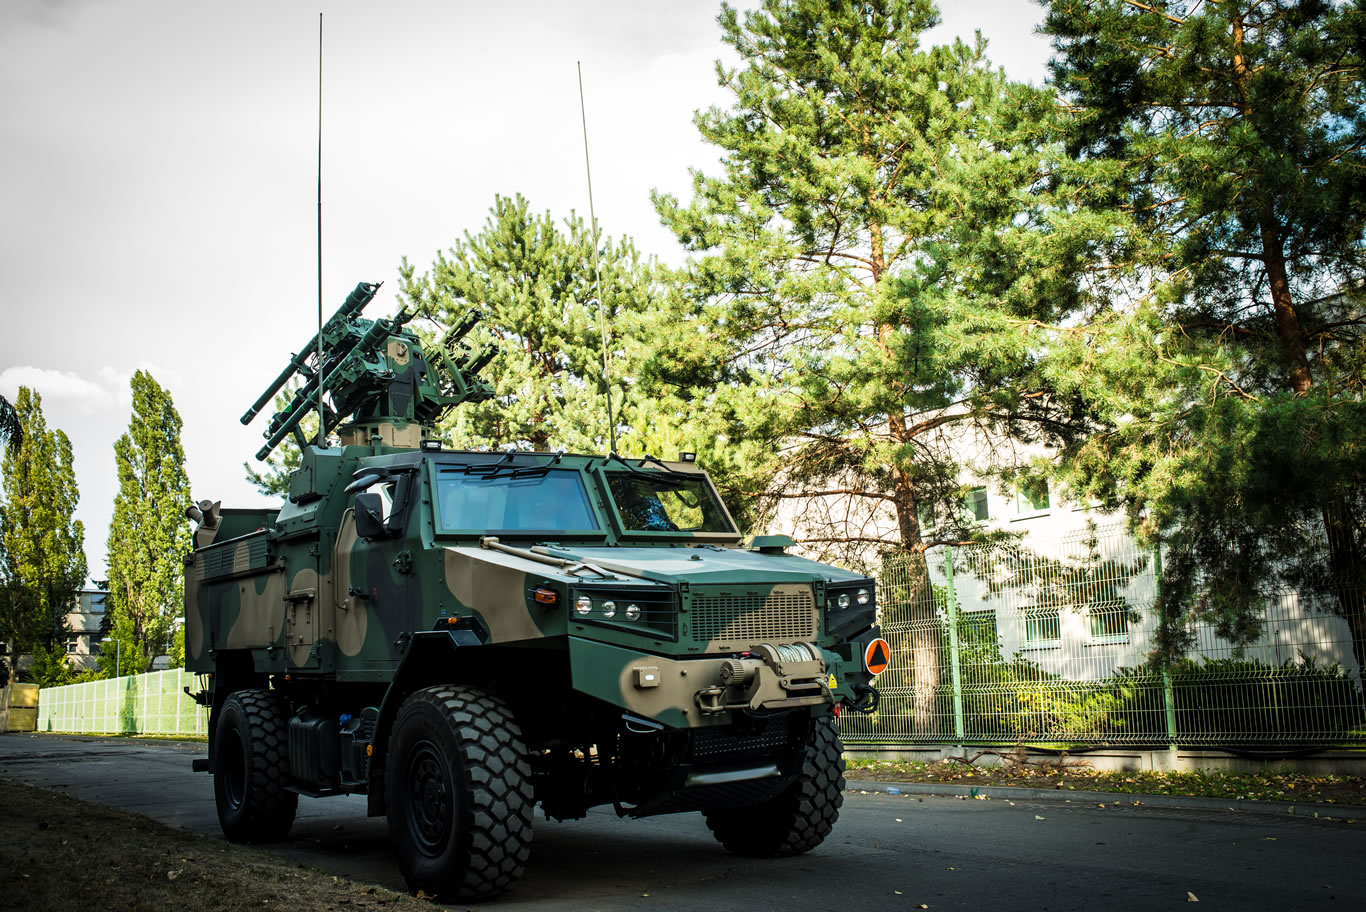 Polish Land Forces Poprad Self-Propelled Surface to Air Missile (SAM)